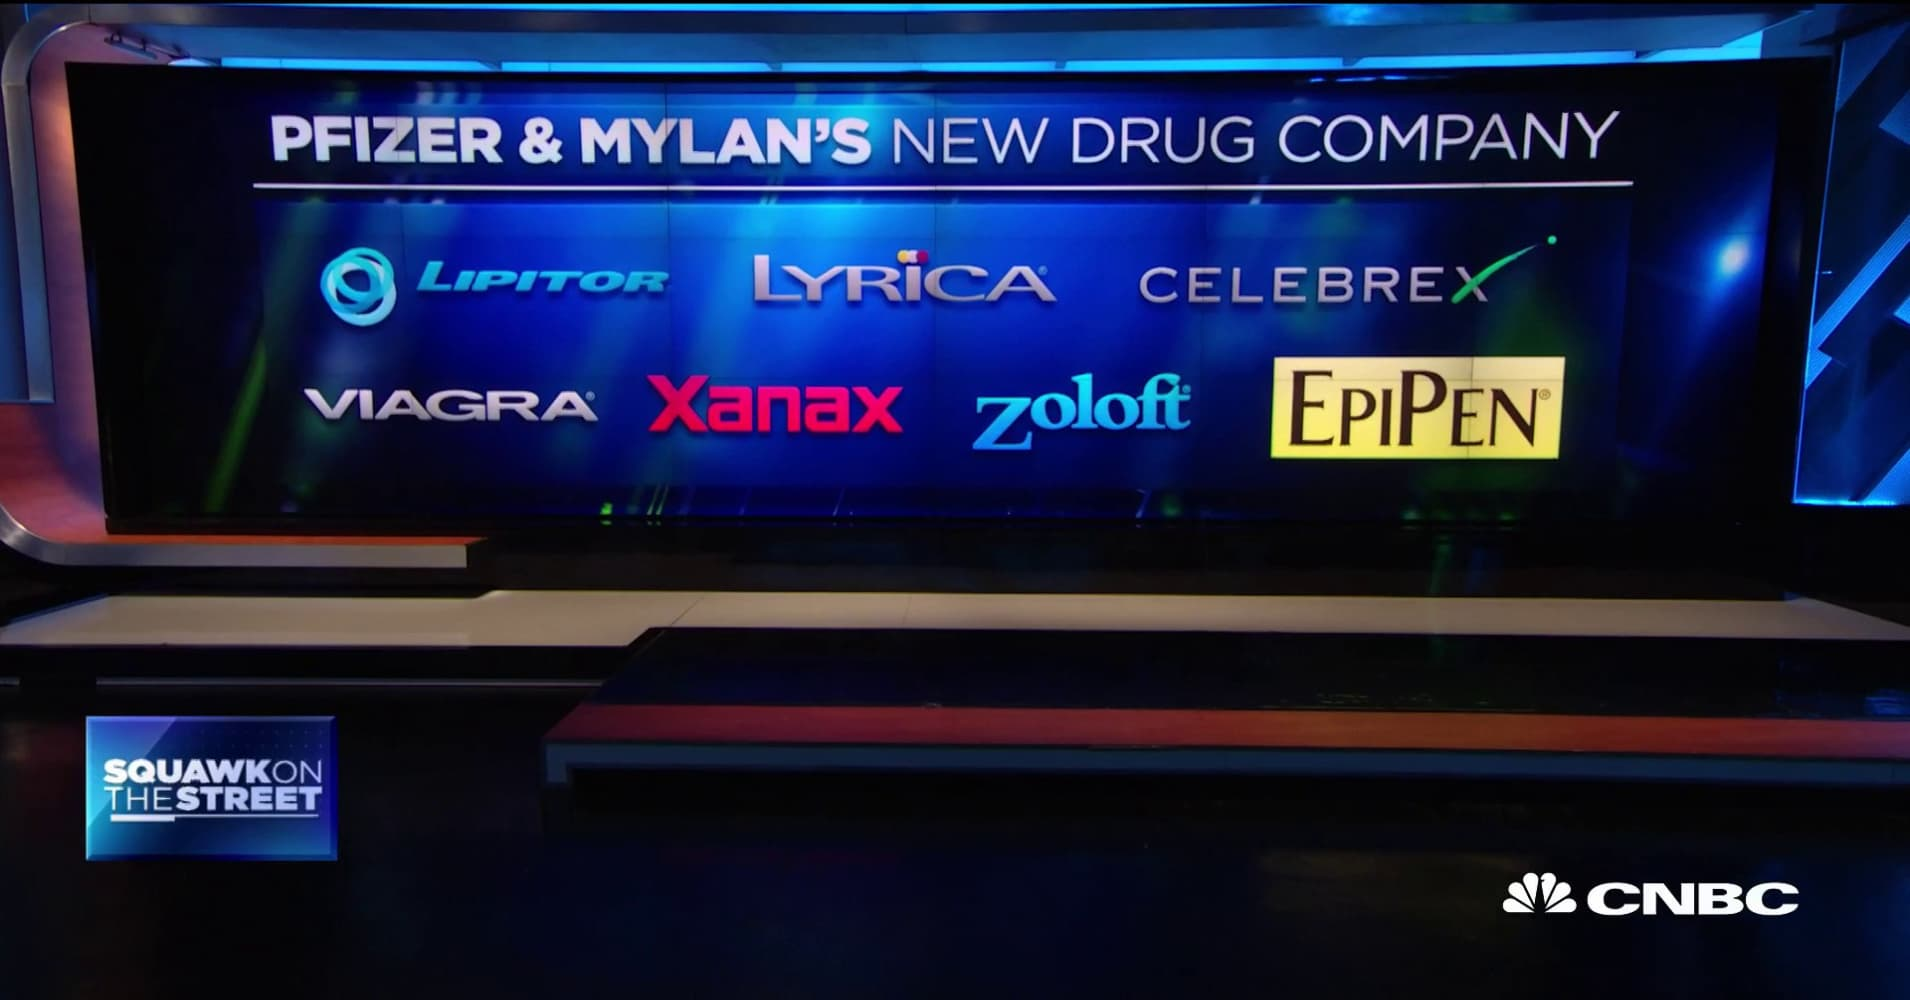 Mylan CEO to depart as part of deal with Pfizer's off-patent drug business